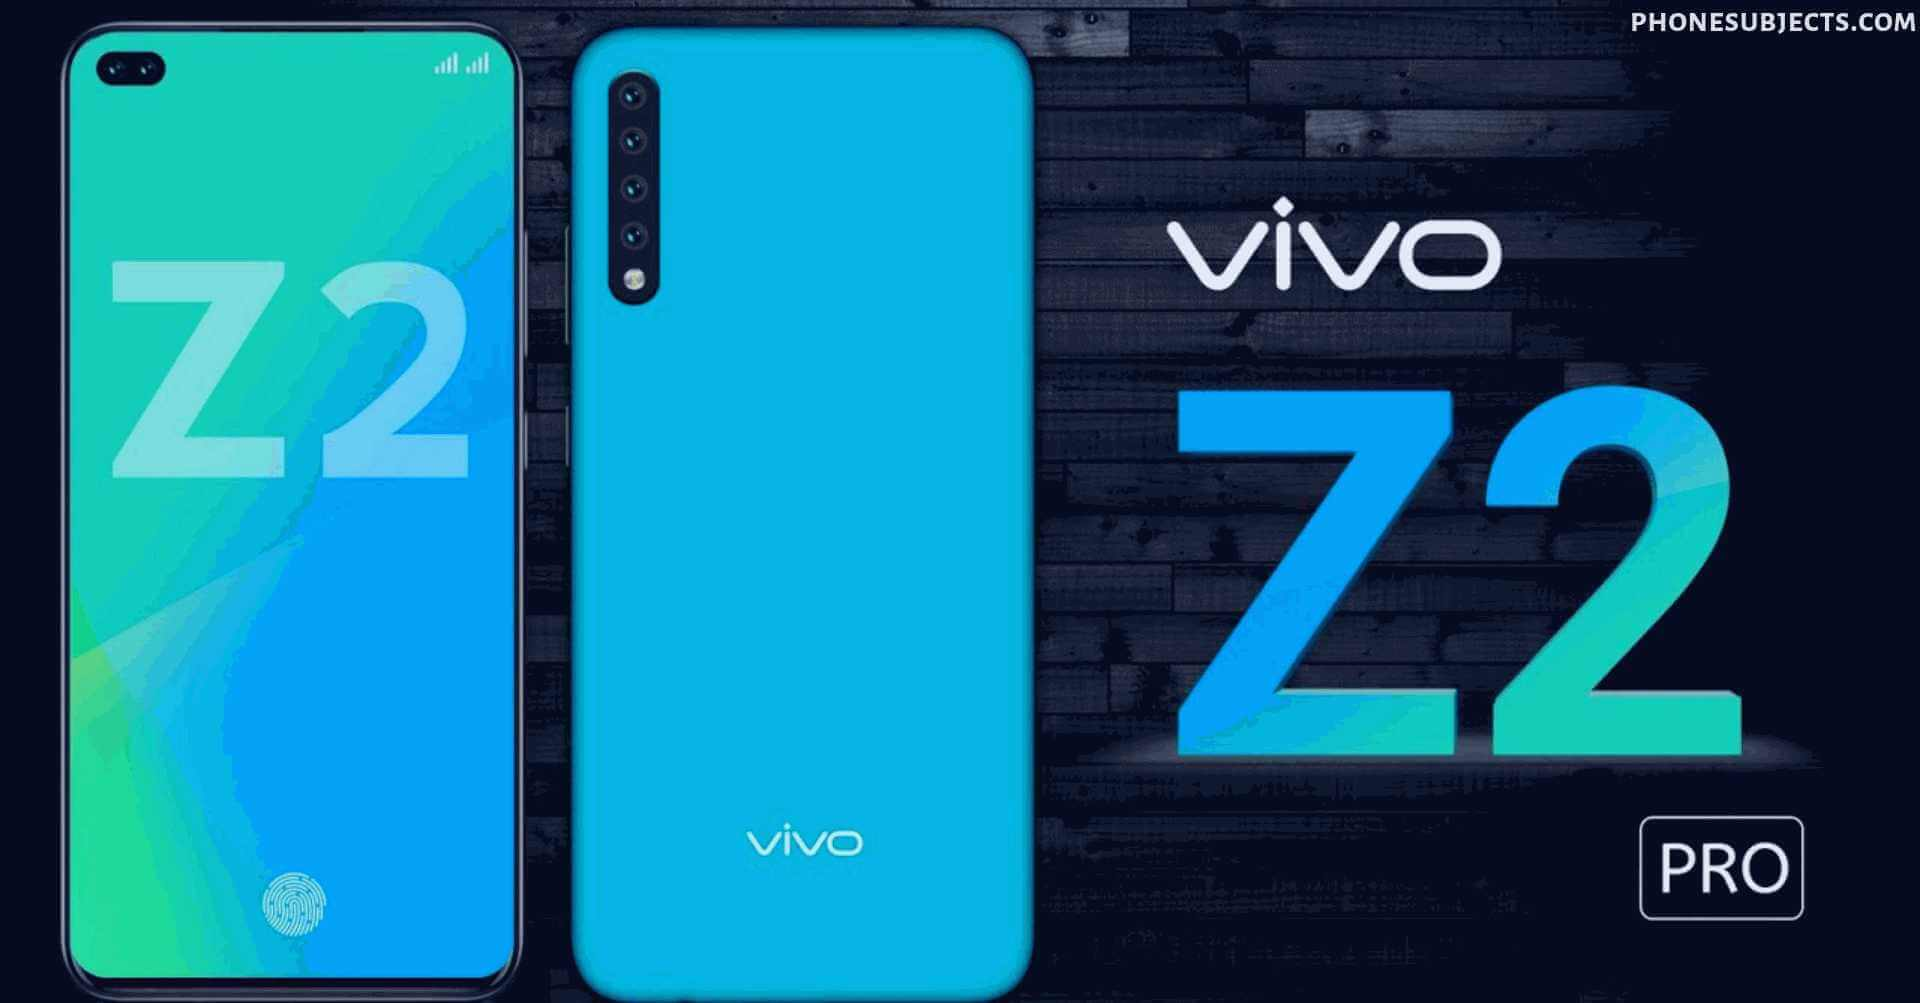 Vivo Z2 Pro: images, HD wallpaper, Processor, Display, Camera, Battery, Expected Launched (2021) very soon